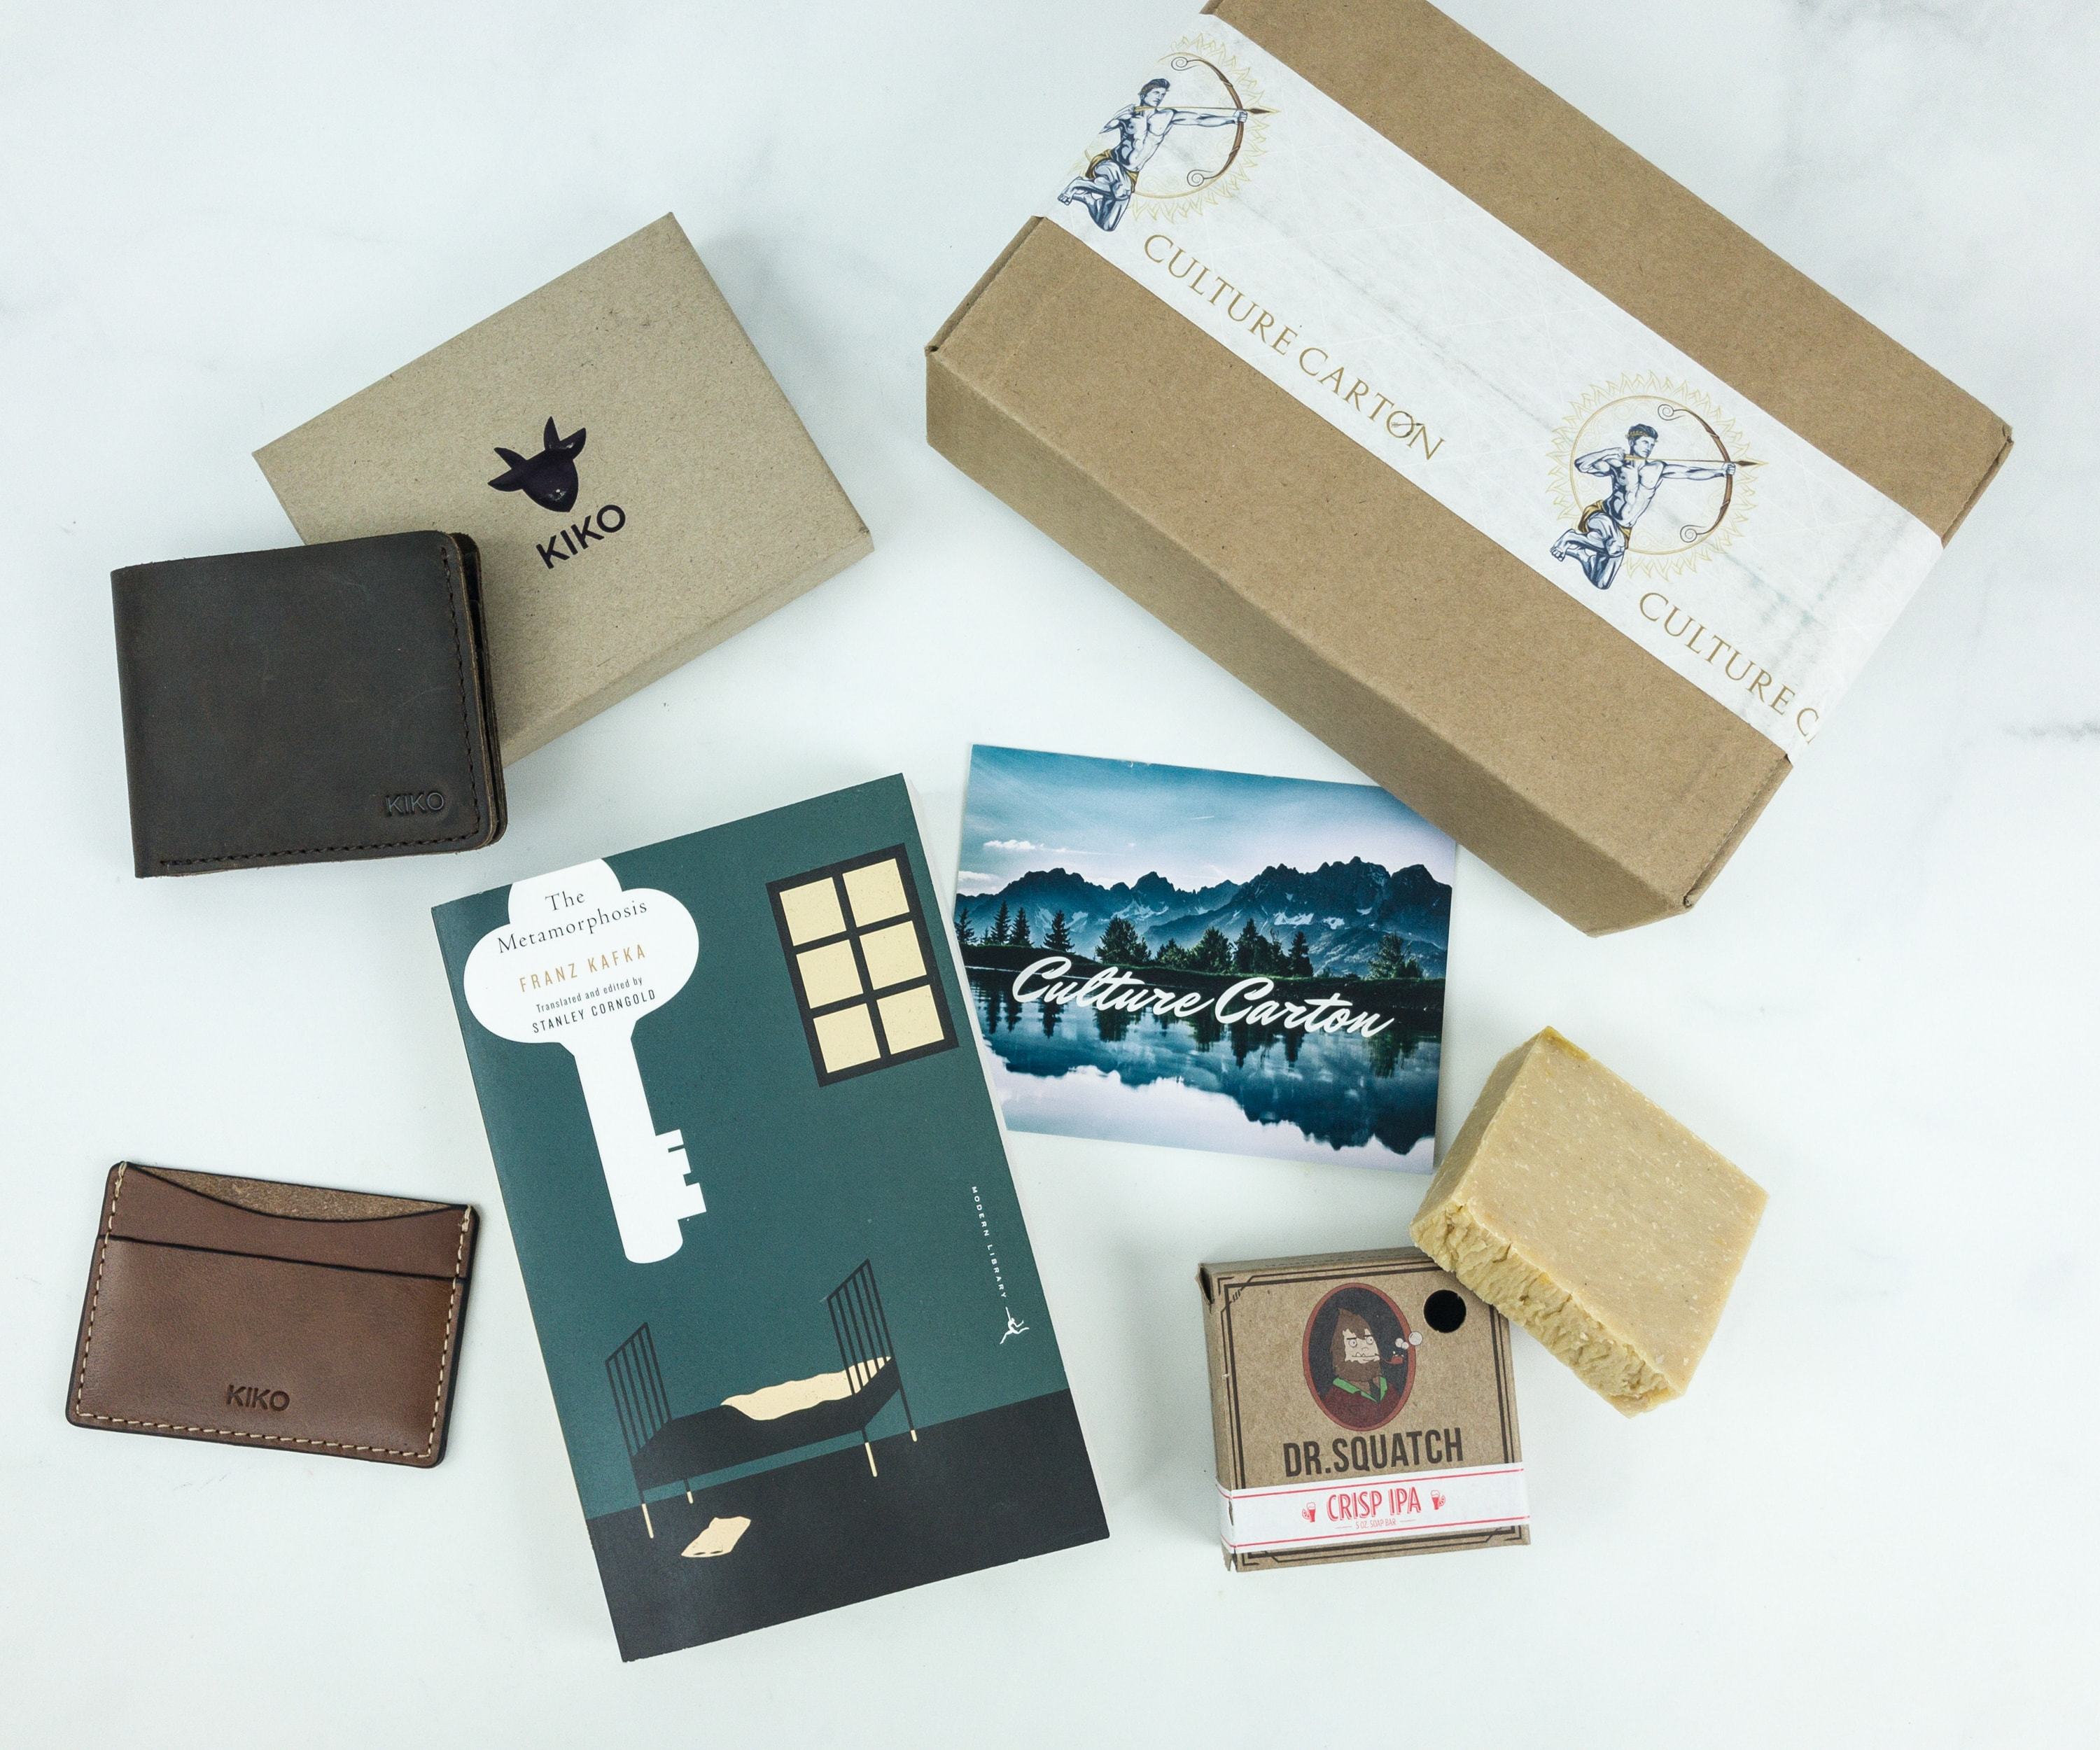 Culture Carton May 2019 Subscription Box Review + Coupon